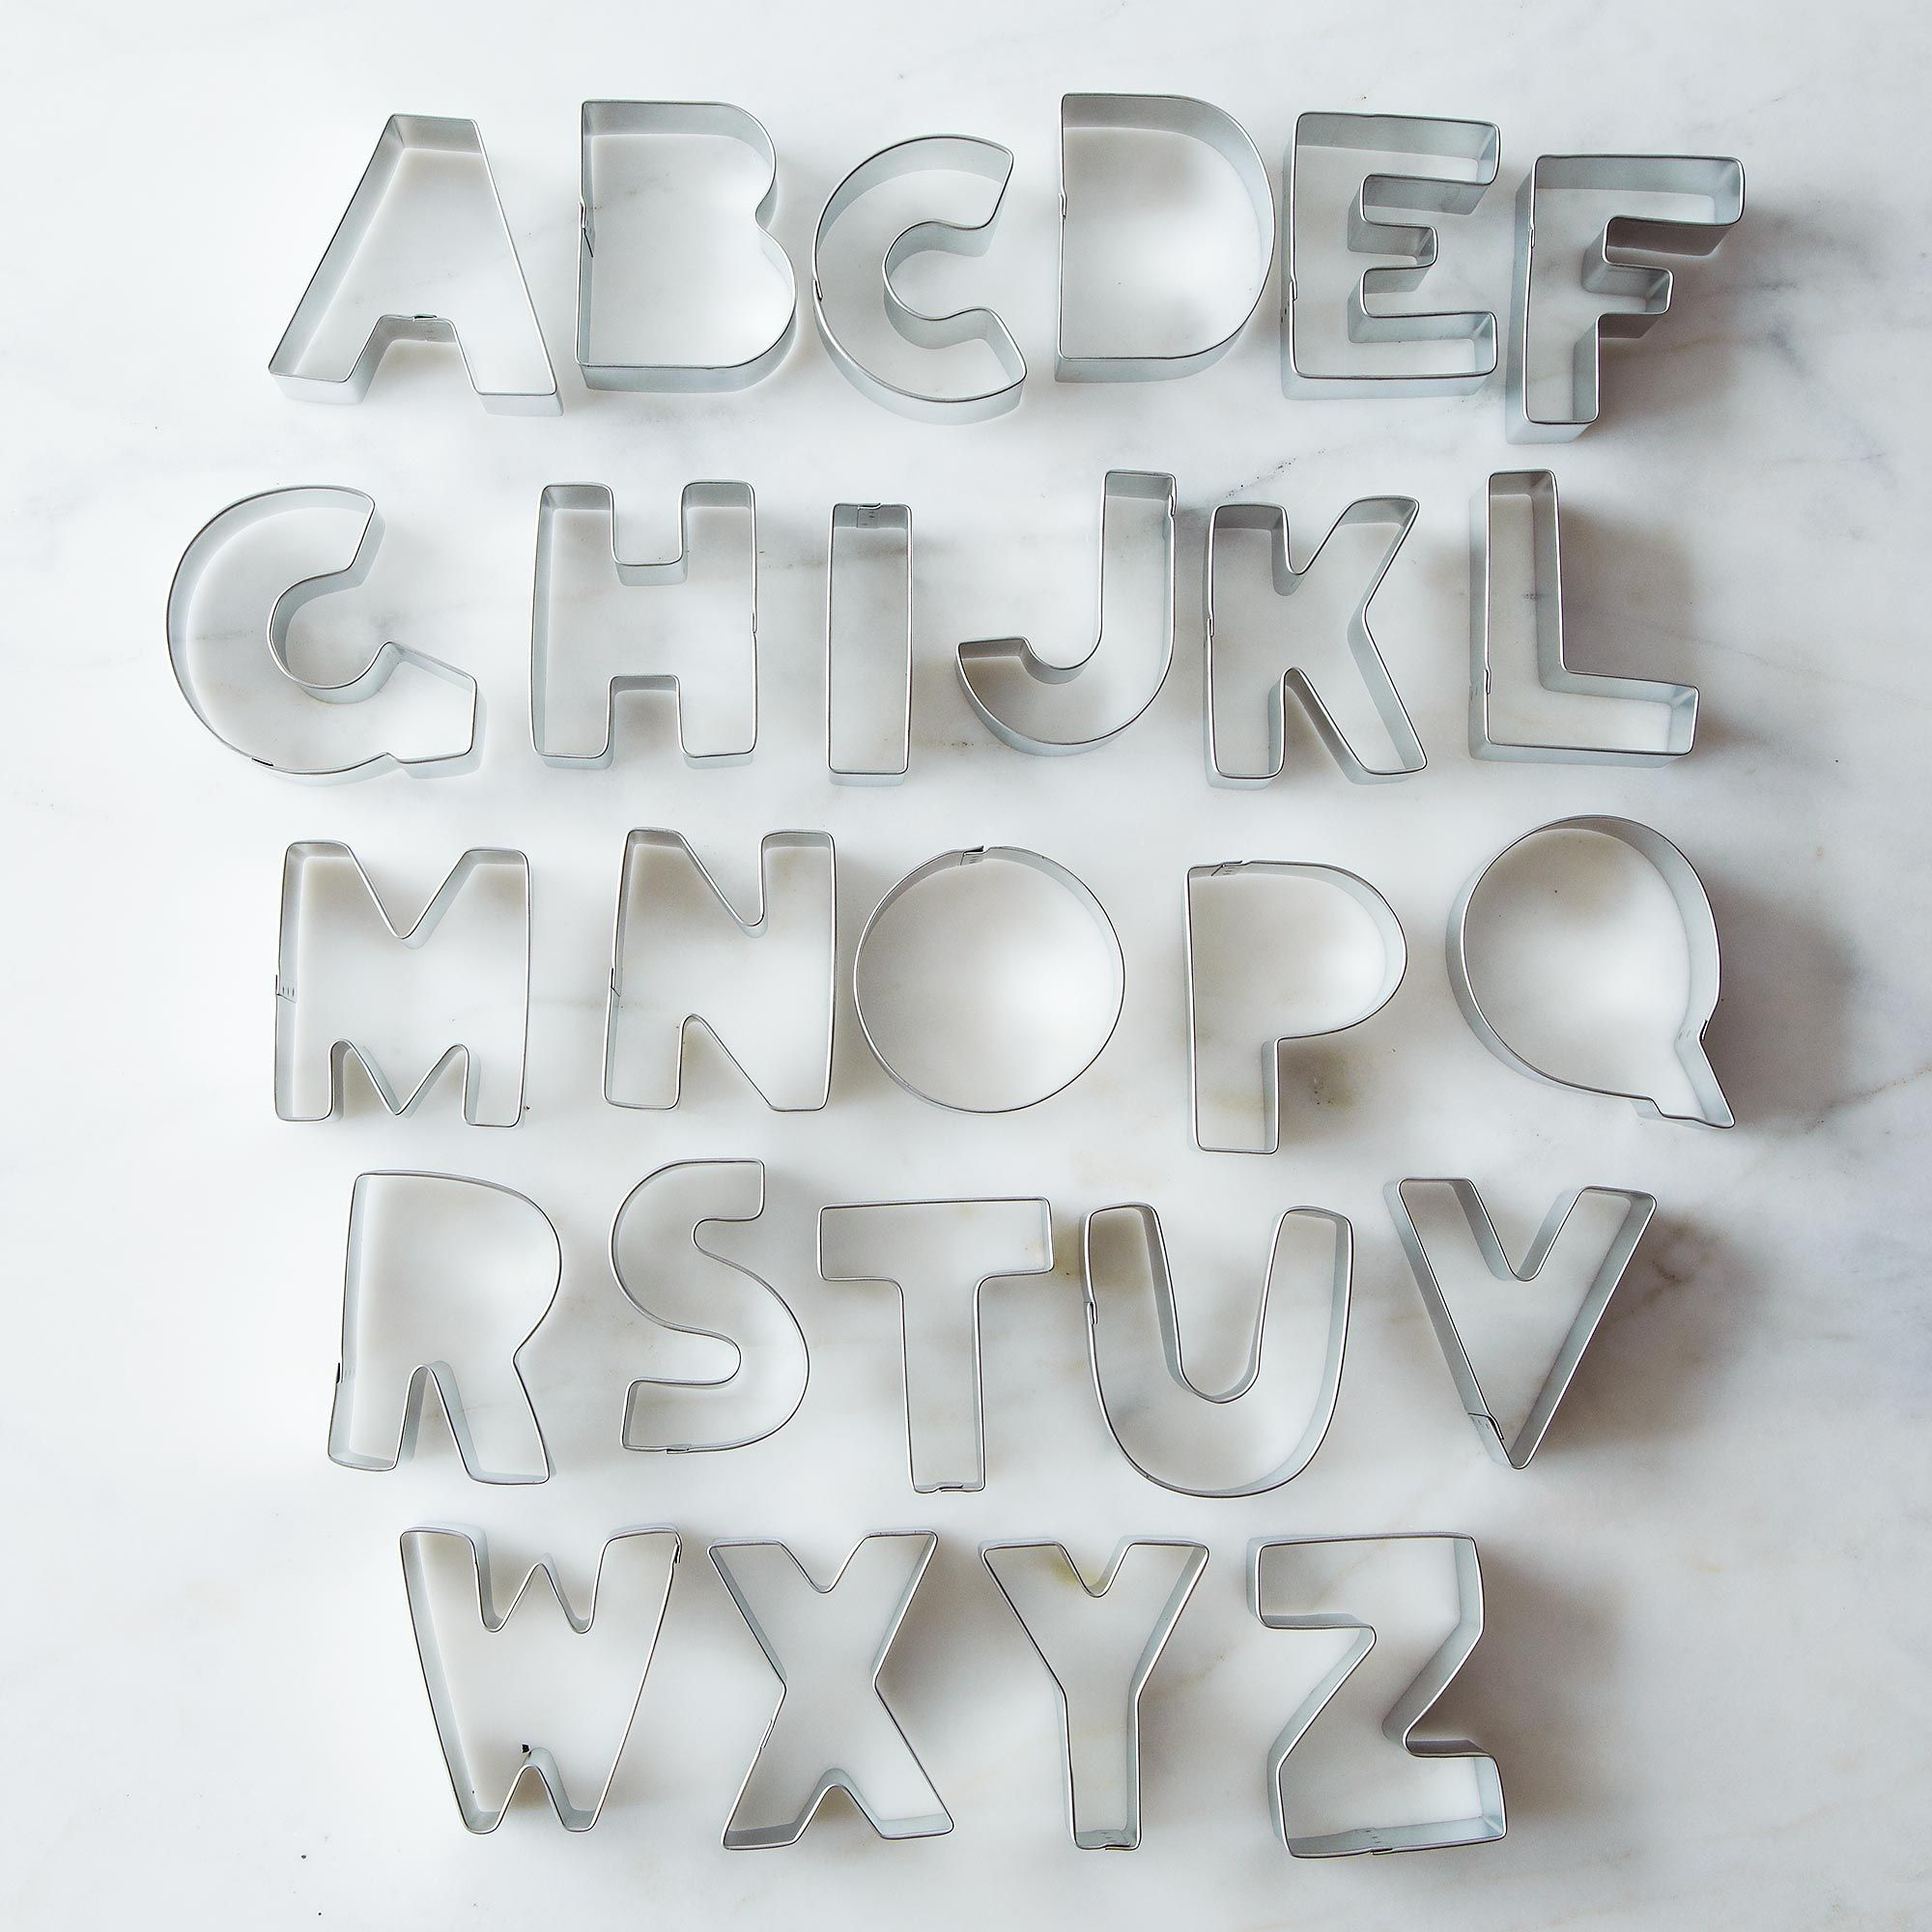 9a0aff88 a0f5 11e5 a190 0ef7535729df  2013 1120 sweet estelle alphabet cookie cutter set 024